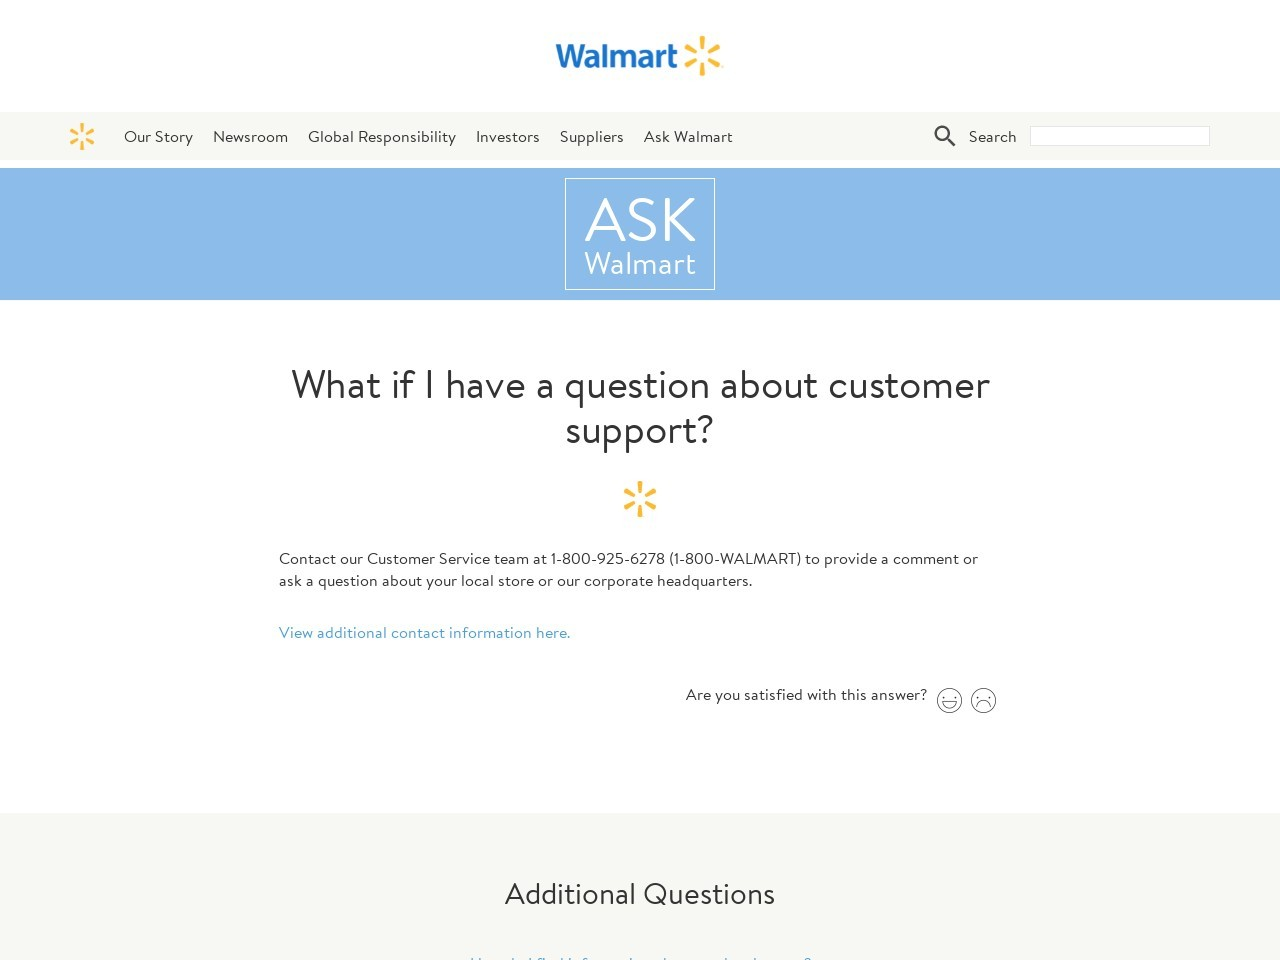 What if I have a question about customer support?